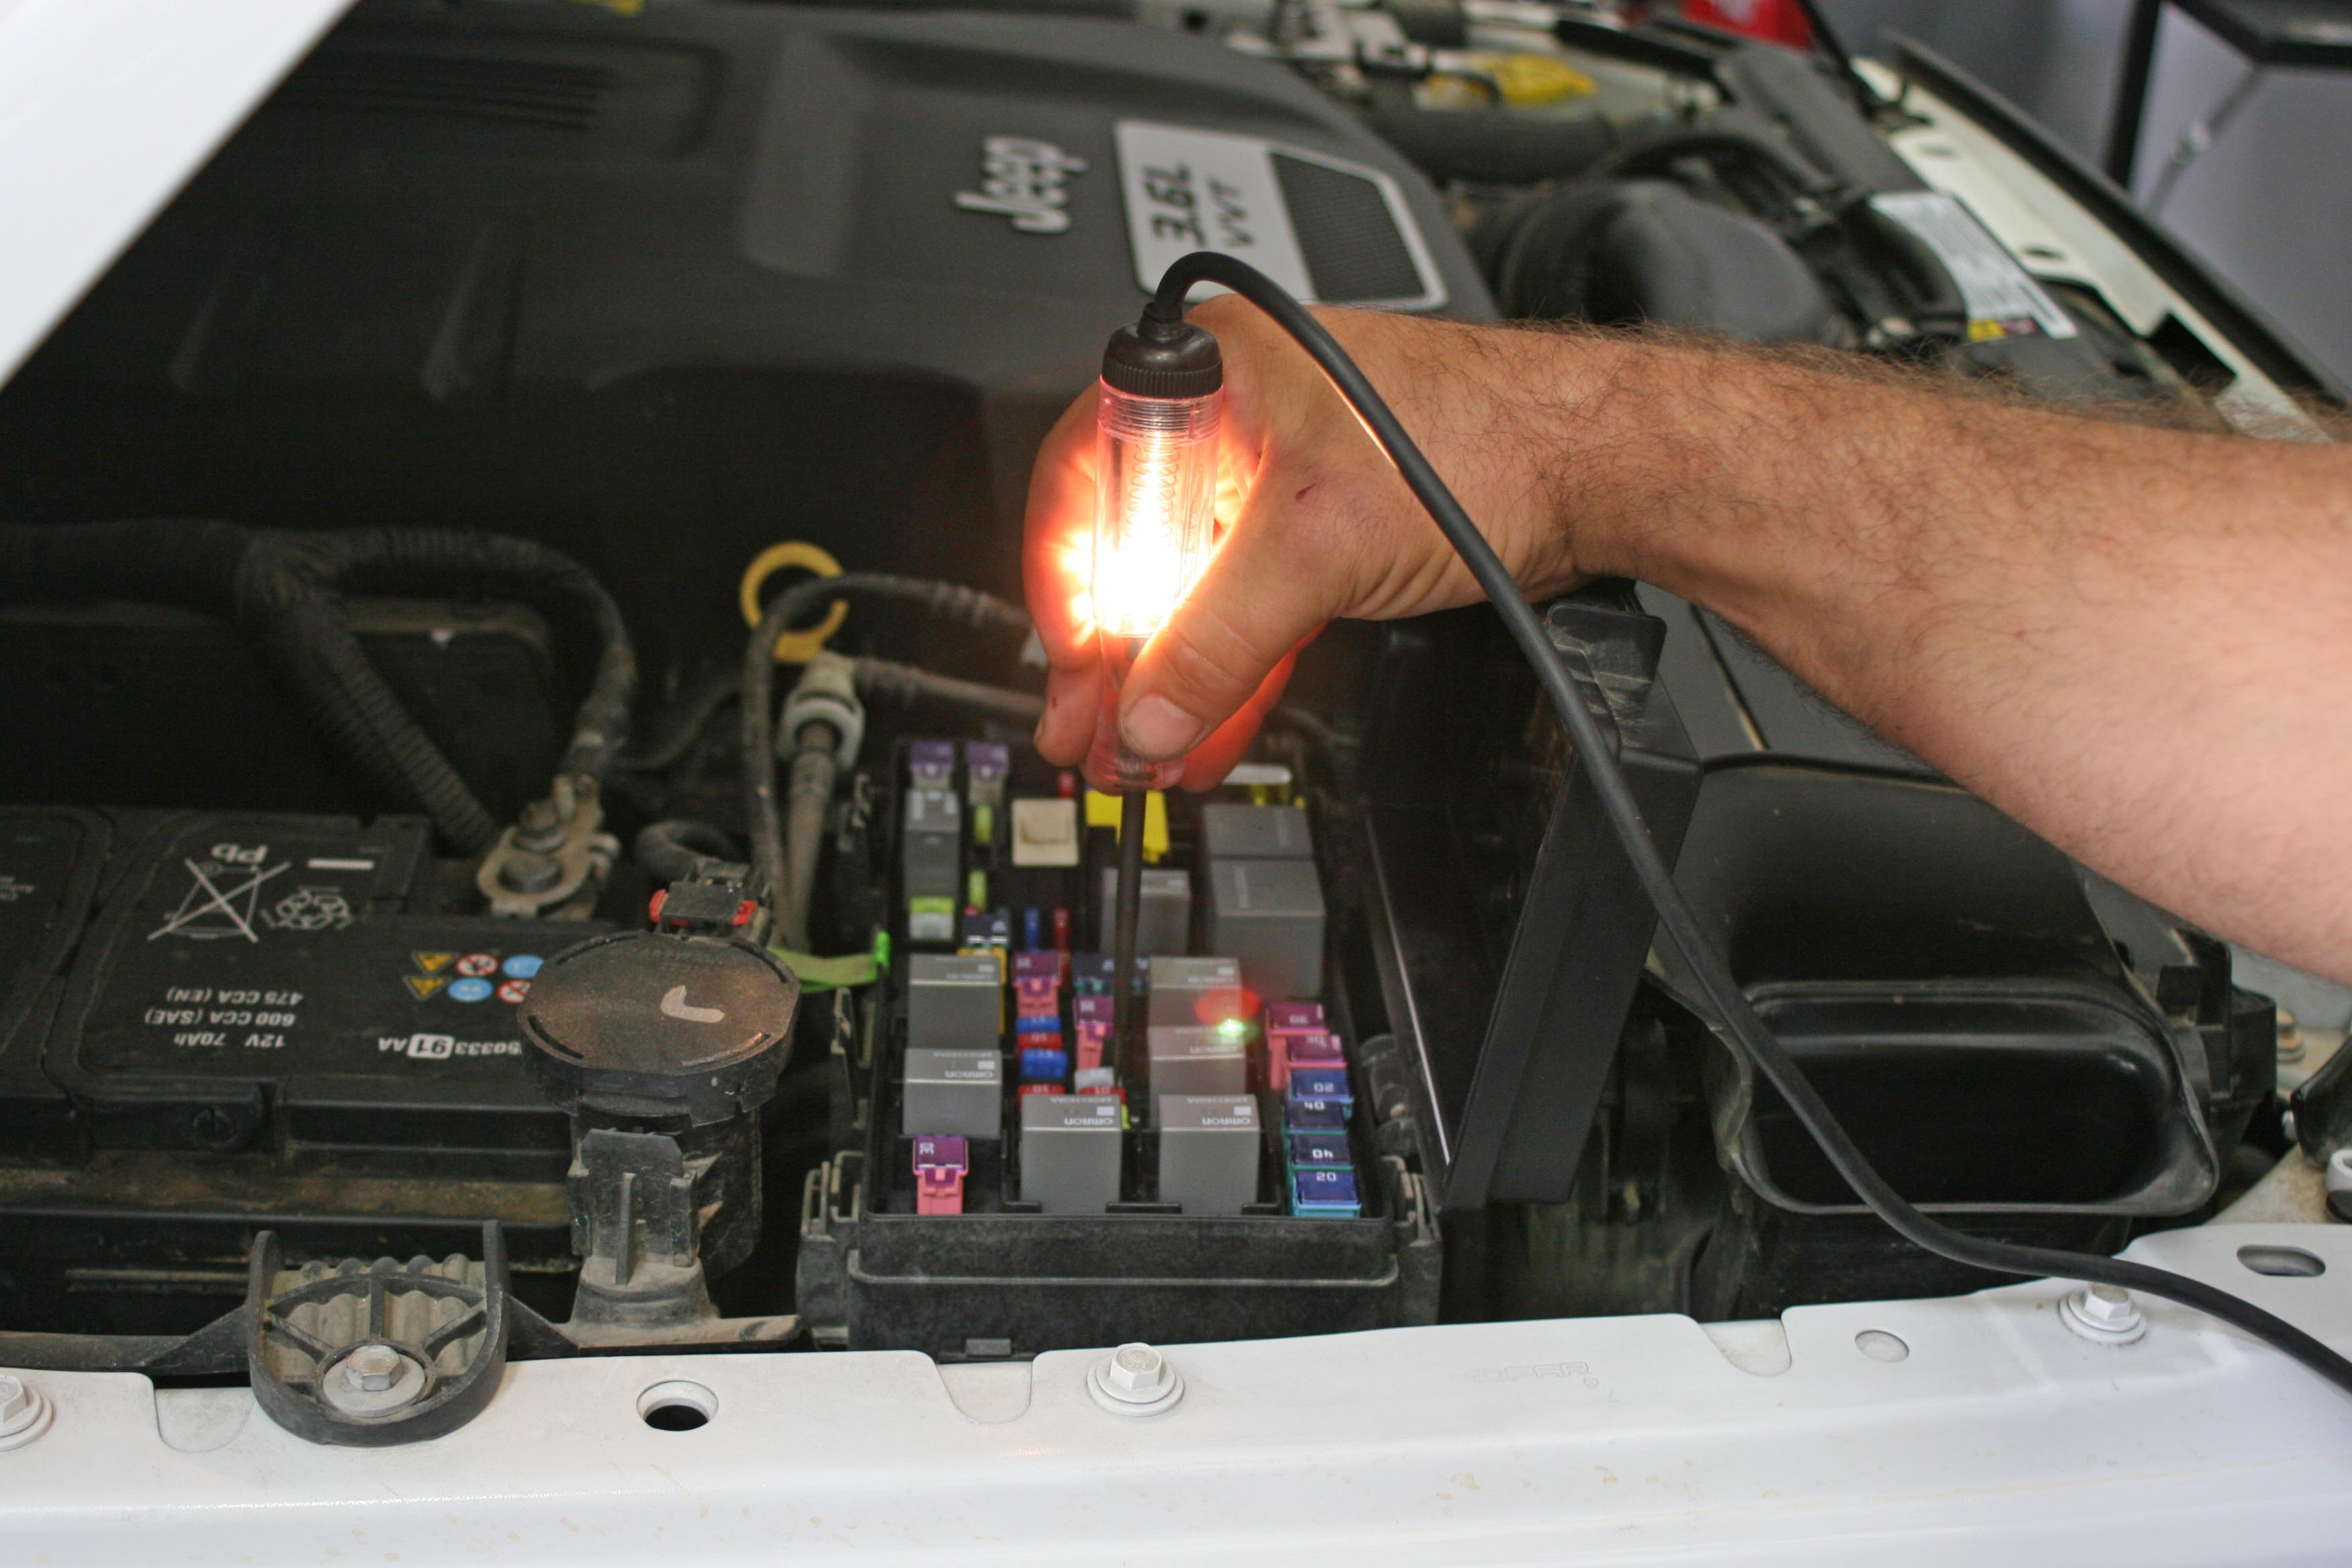 2012 jeep wrangler wiring diagram 1981 cb750 tj fuse best library 2001 box electrical house u2022 97